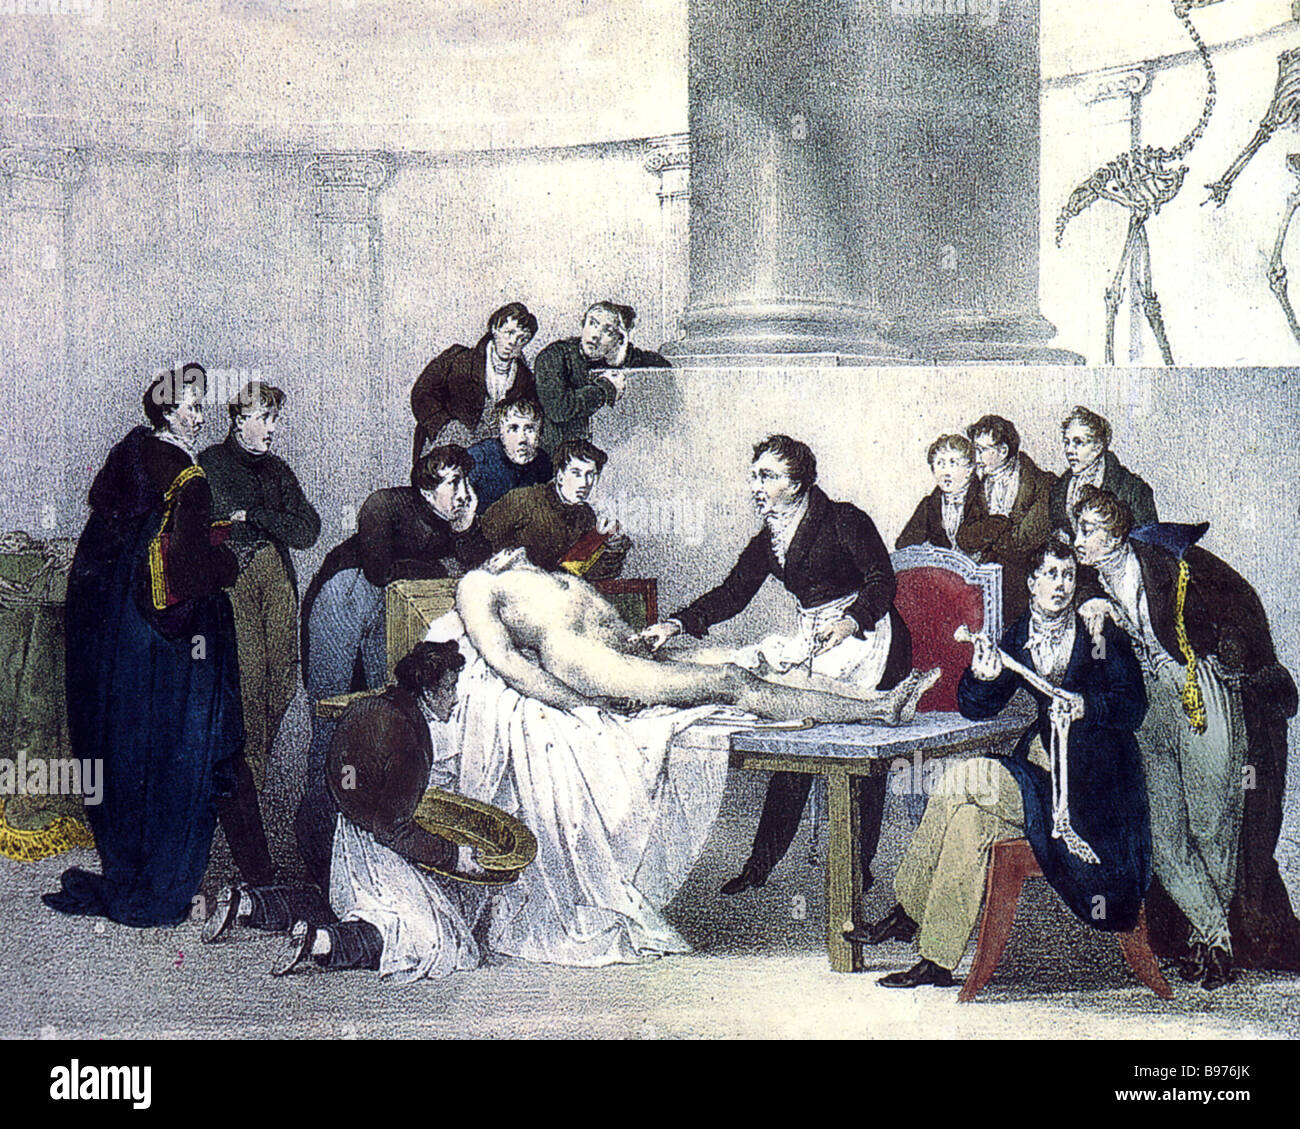 ANATOMY LESSON in a French engraving dated 1826 - Stock Image